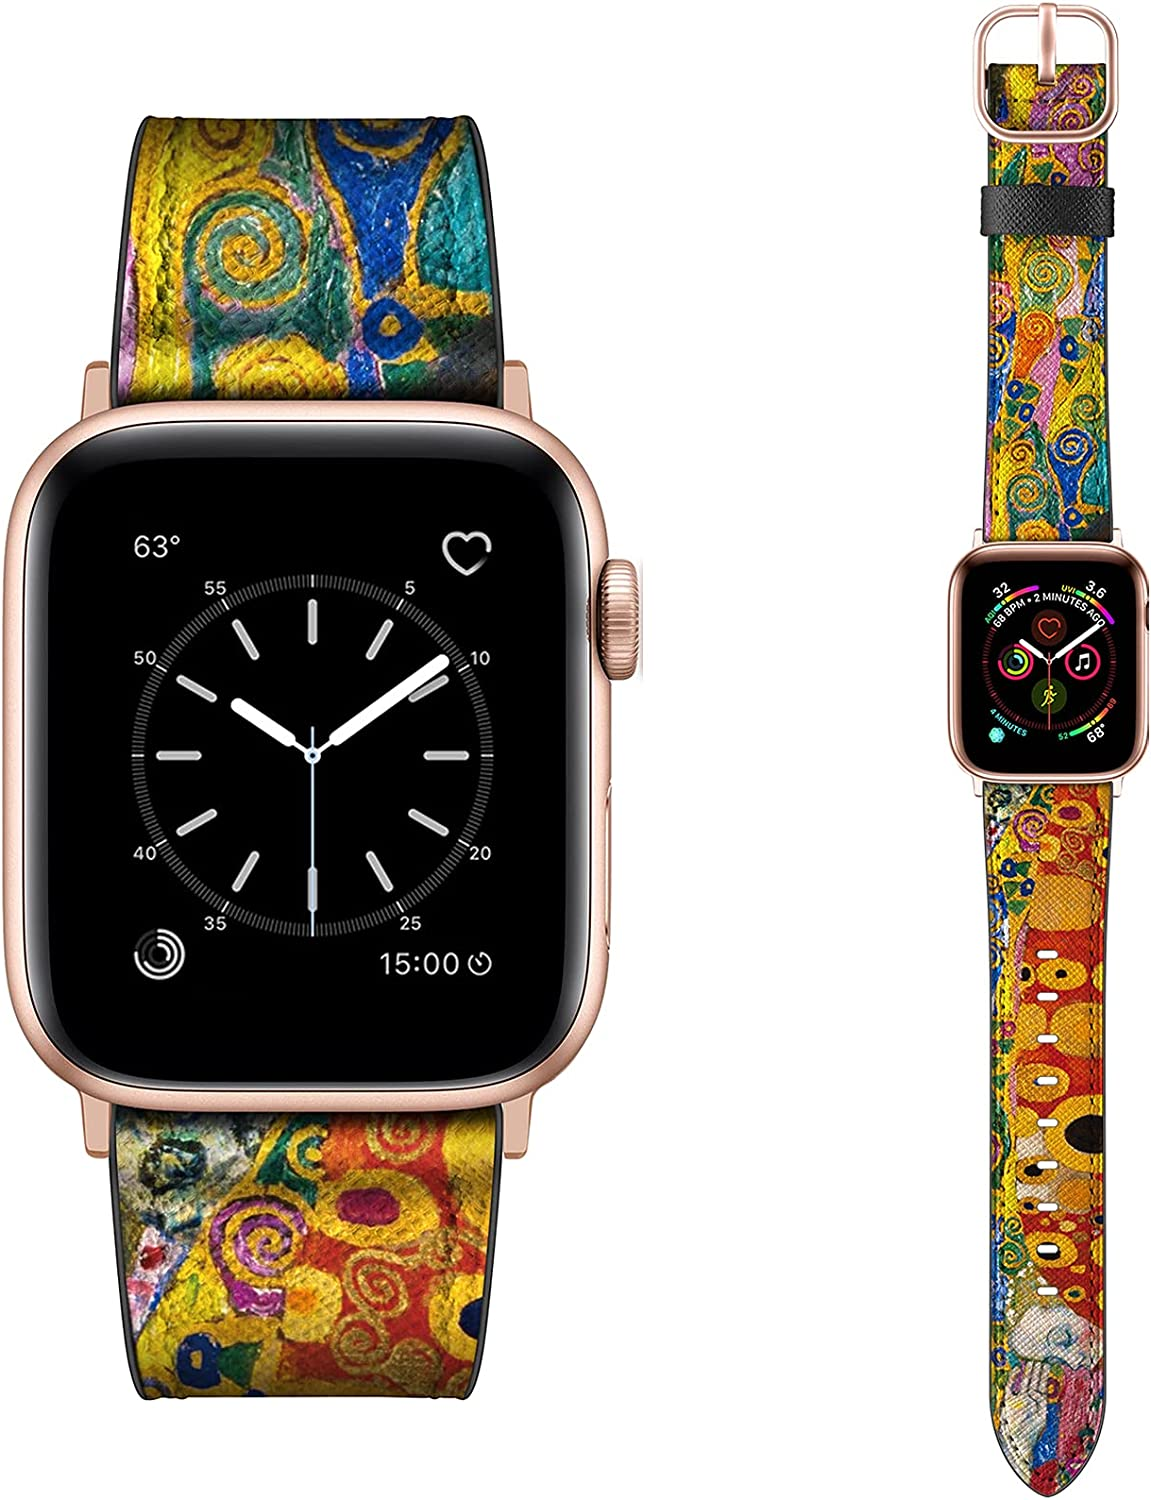 Dilando Leather Band Compatible with Apple Watch Series 6 44mm 42mm Genuine Leather Vintage Replacement Strap Classic Bracelet Buckle for iWatch SE 6 5 4 3 2 1 Women Men Orange 44mm 42mm